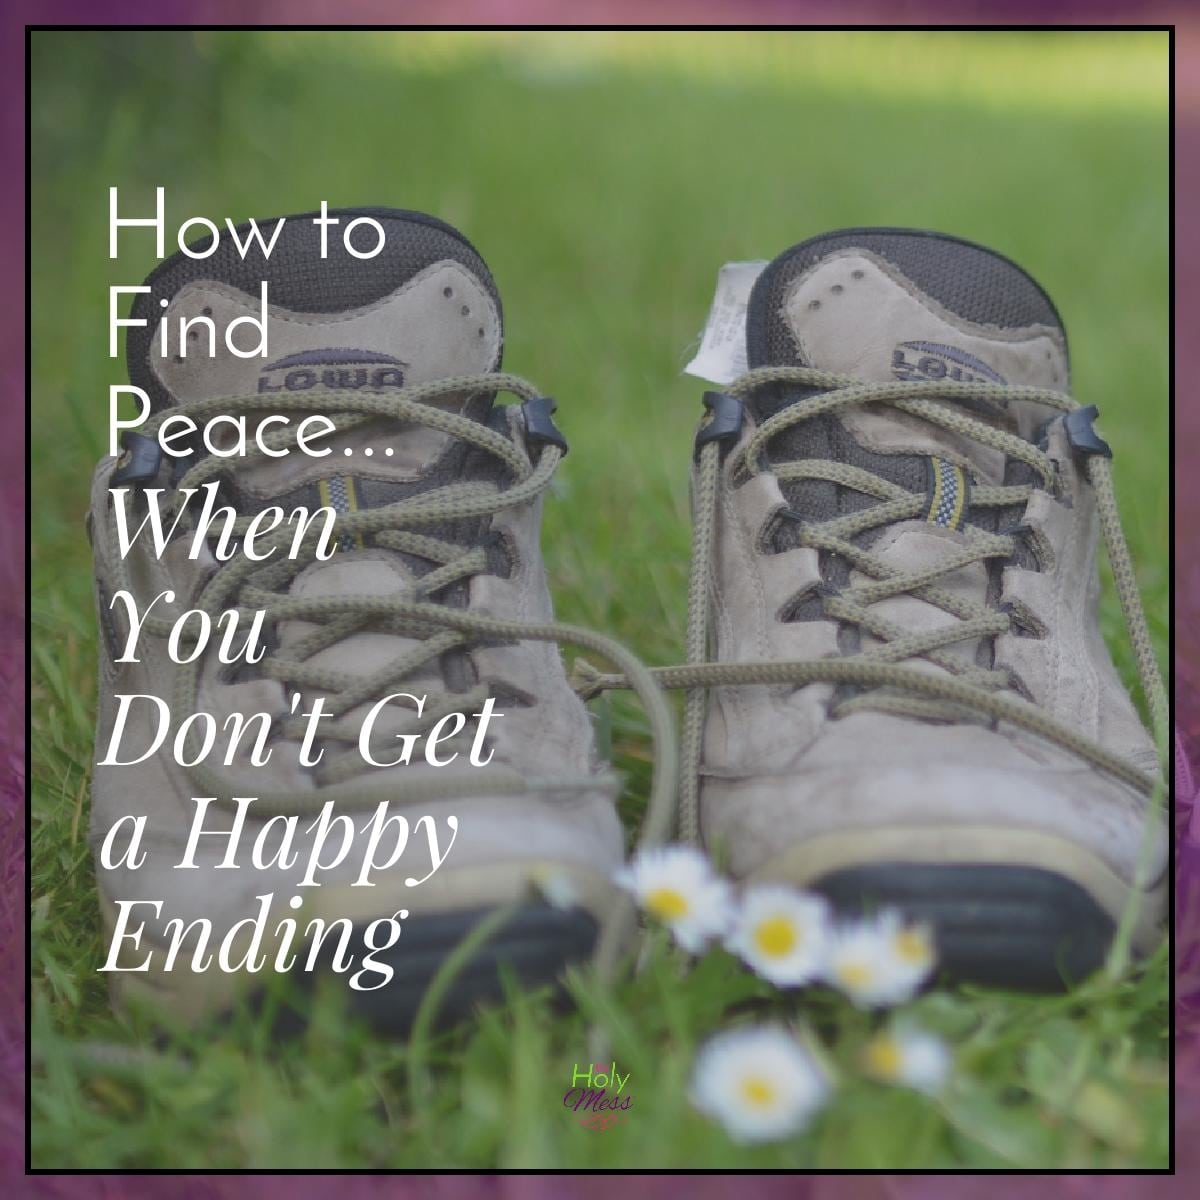 How to Find Peace...When You Don't Get a Happy Ending|The Holy Mess